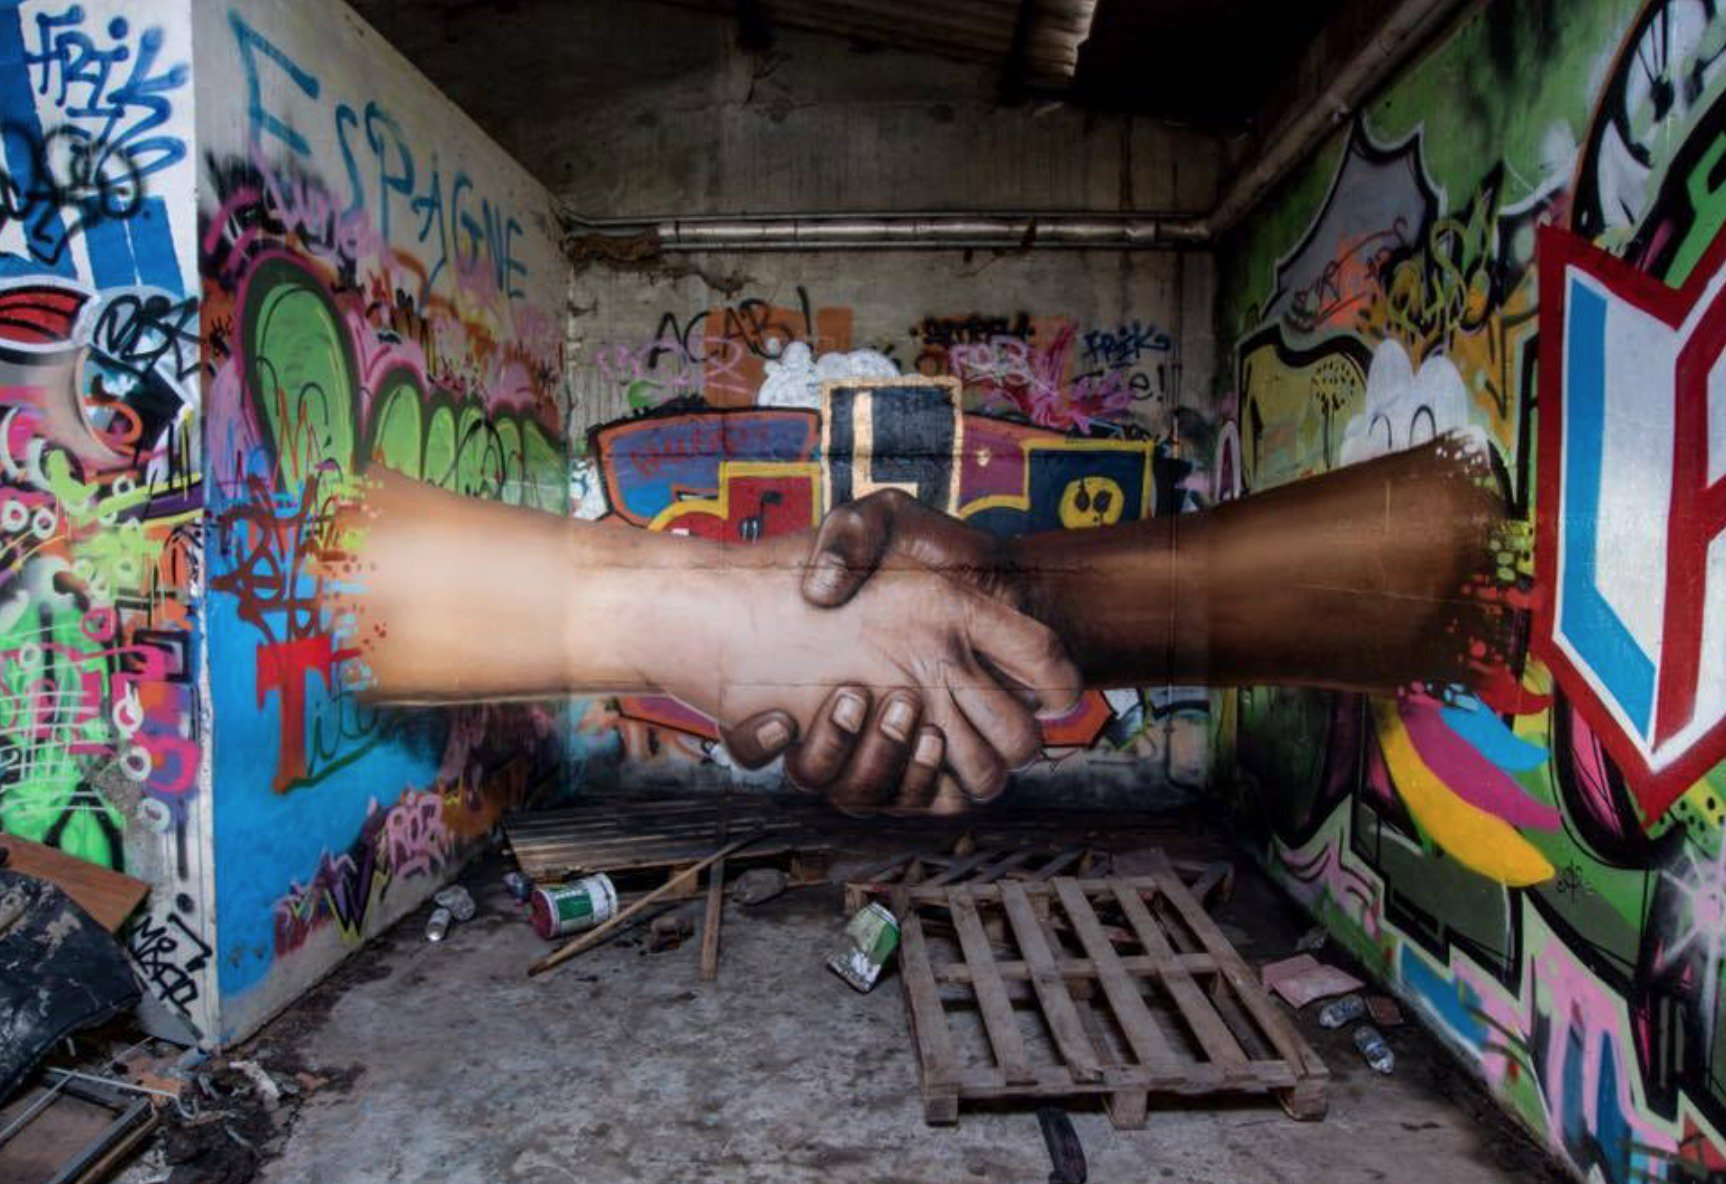 A mural of a black hand and white hand holding hands